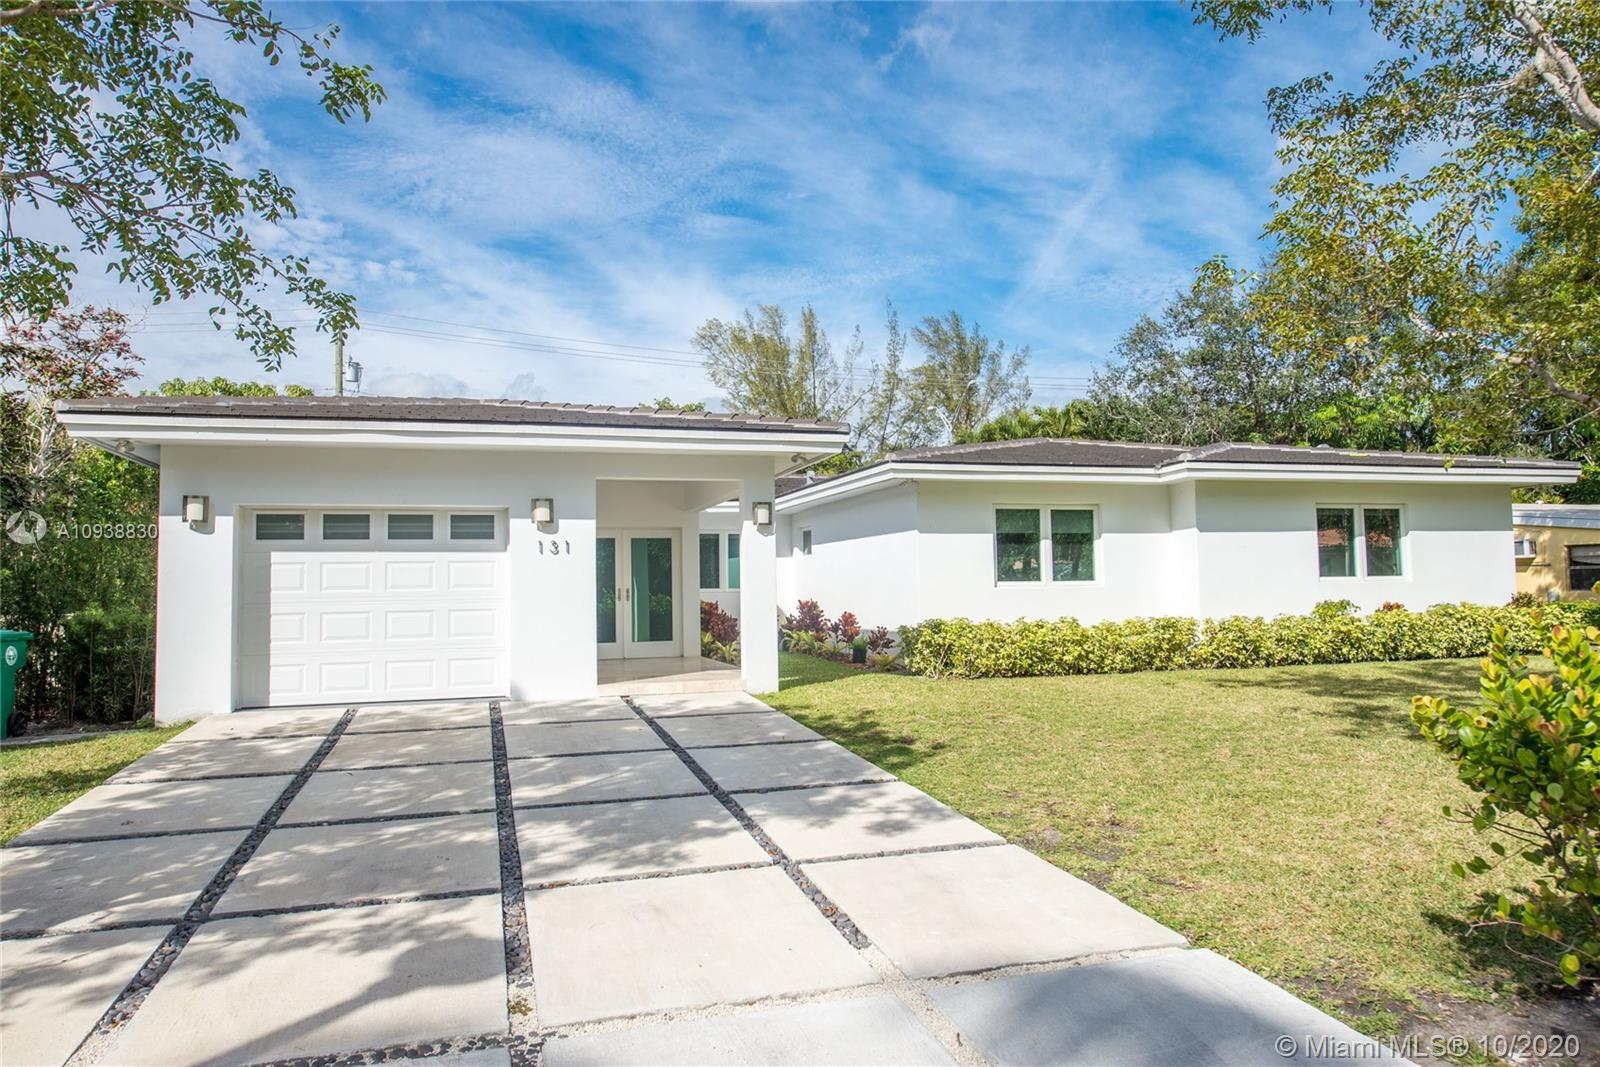 131 Shore Dr W, Miami, Florida 33133, 5 Bedrooms Bedrooms, ,6 BathroomsBathrooms,Residential,For Sale,131 Shore Dr W,A10938830